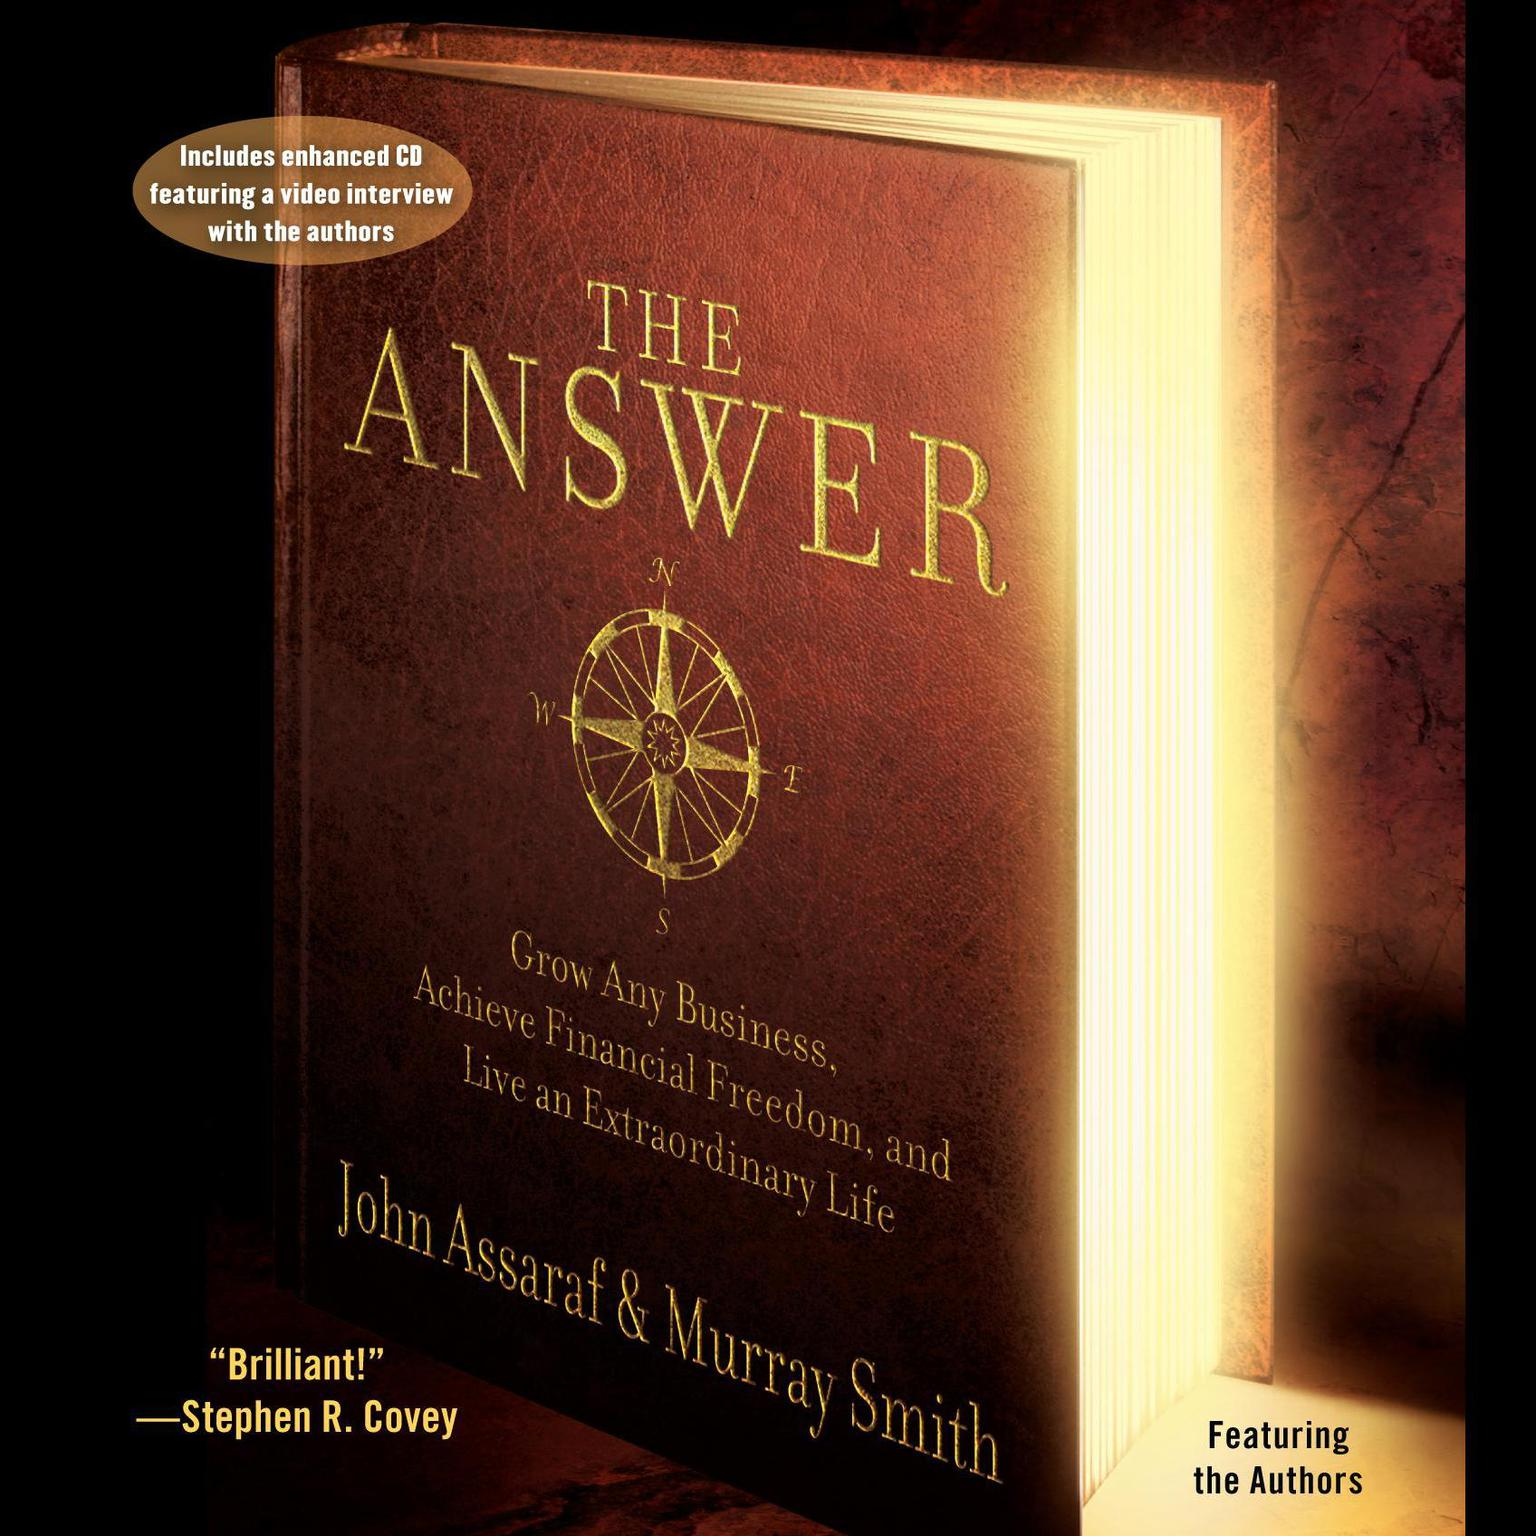 The Answer (Abridged): Grow Any Business, Achieve Financial Freedom, and Live an Extraordinary Life Audiobook, by John Assaraf